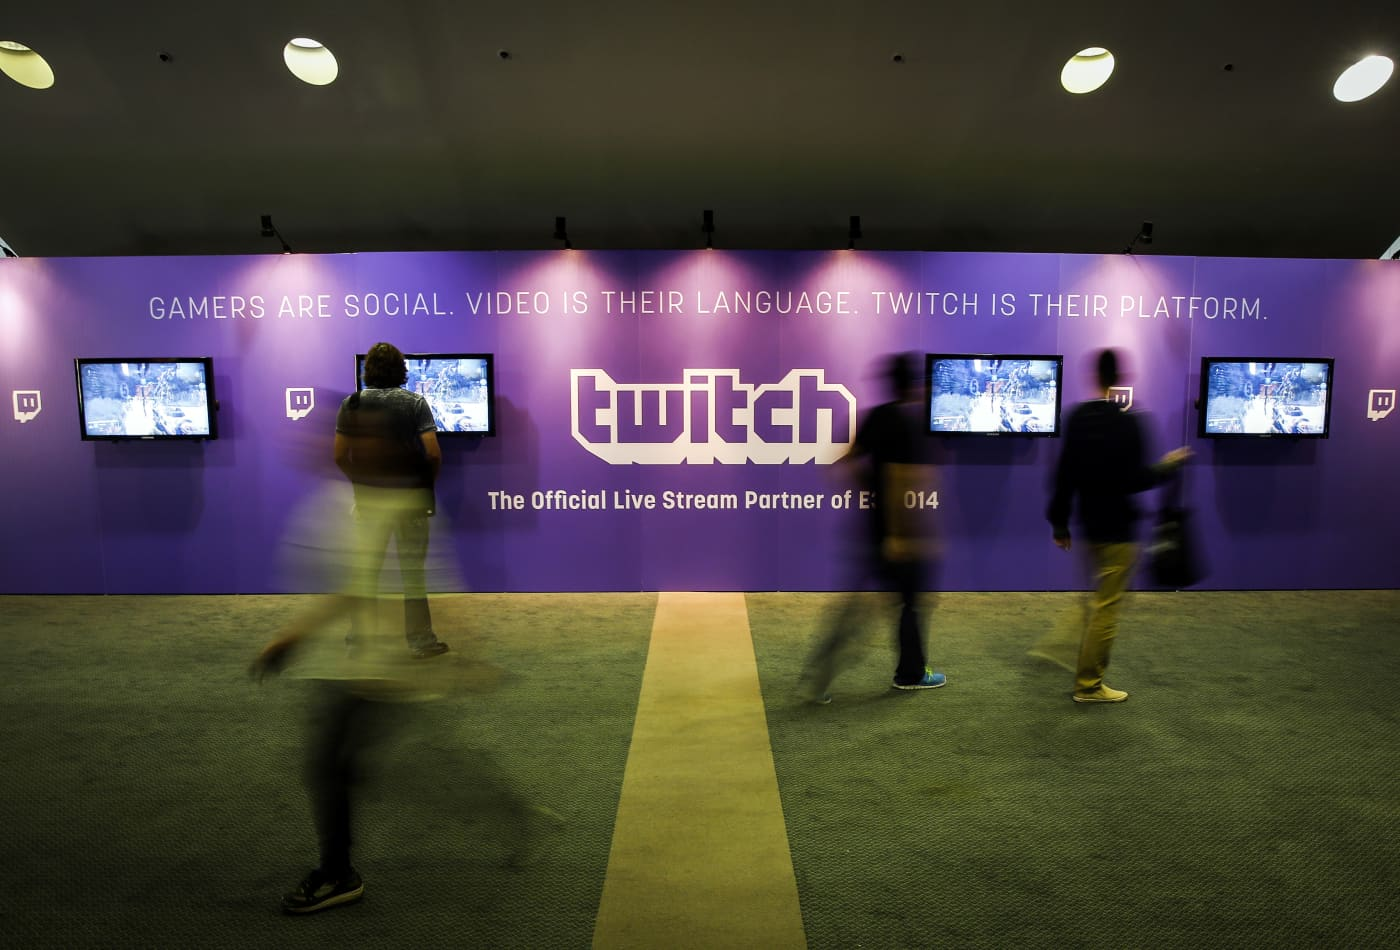 Amazon's Twitch will punish users for certain harmful offline behavior like engaging in deadly violence